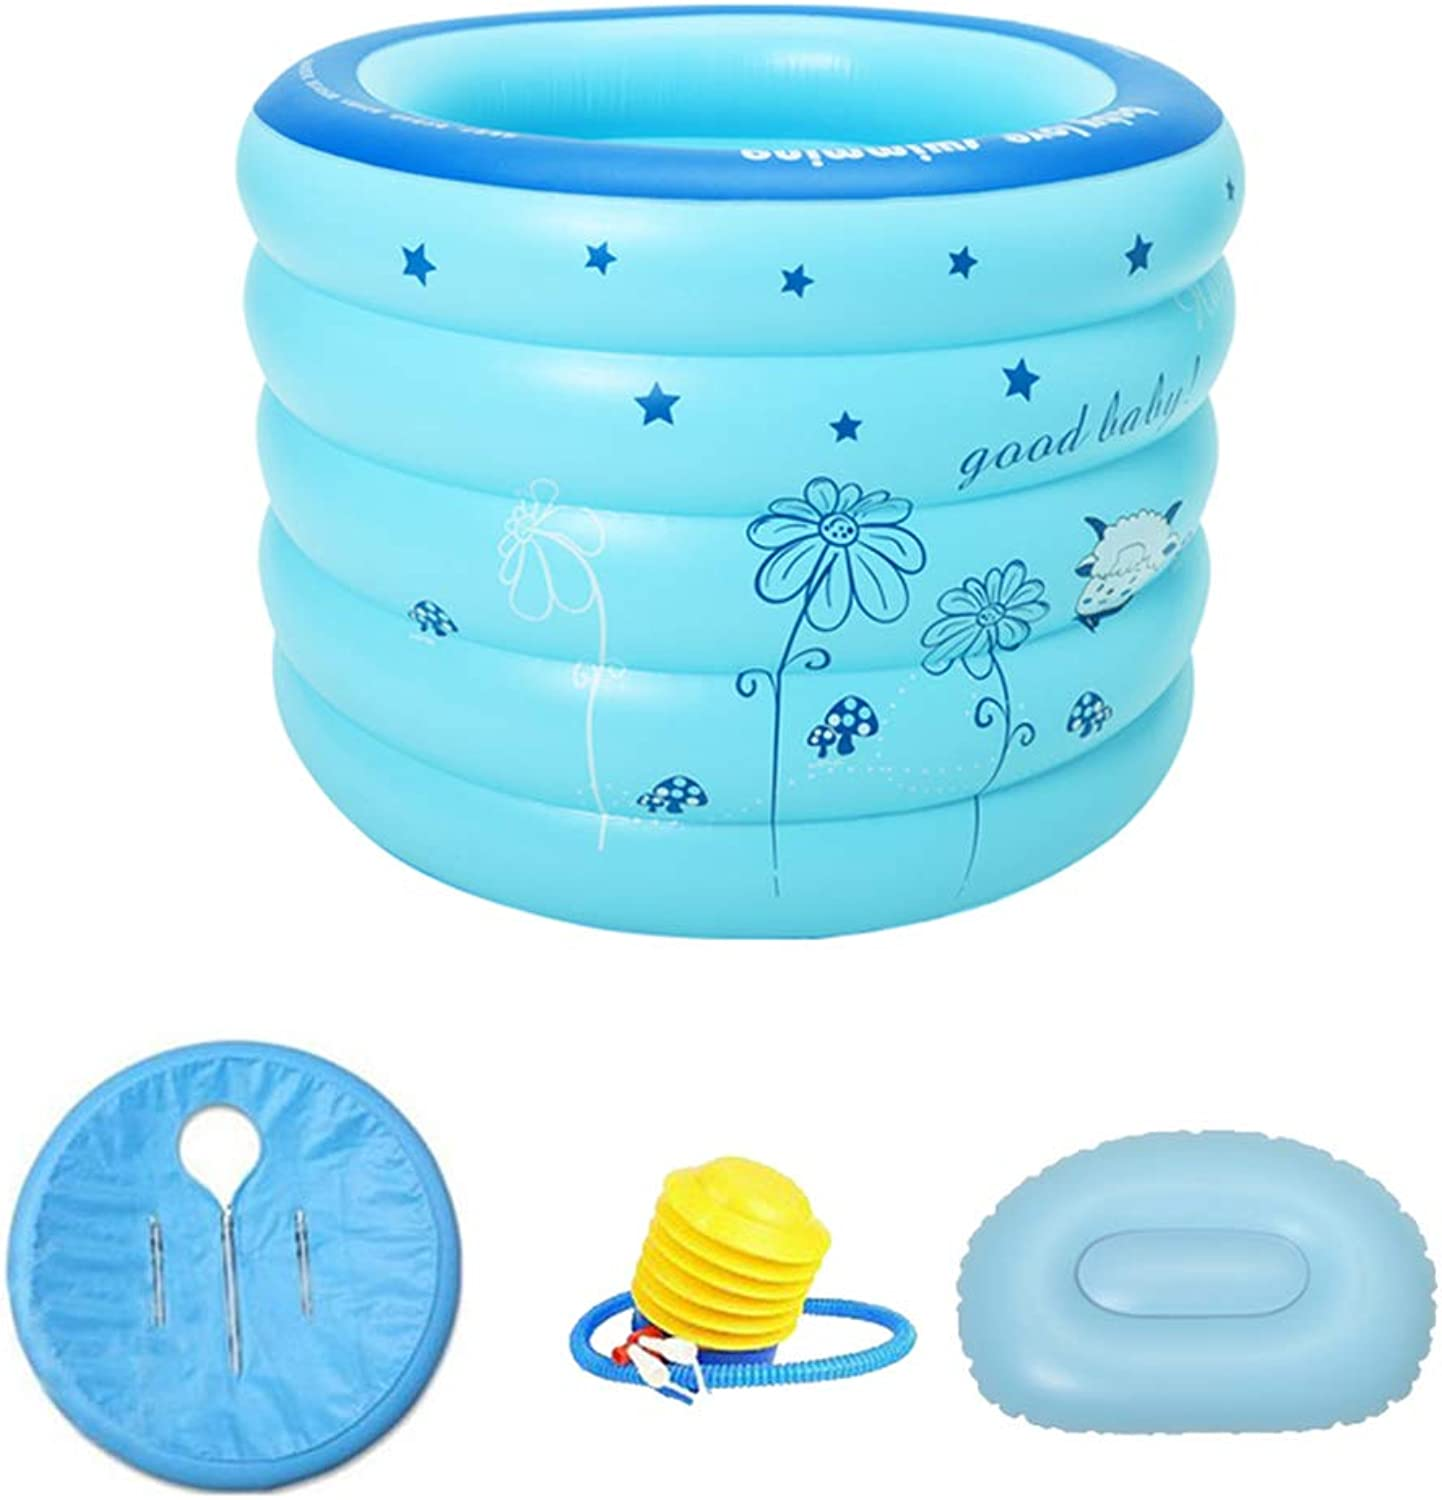 ZQ Adult Kids Folding SPA Bathtub, Plastic Inflatable Bathtub for Toddler, Thickening independent 5 layers Inflated Bath barrel bluee-C